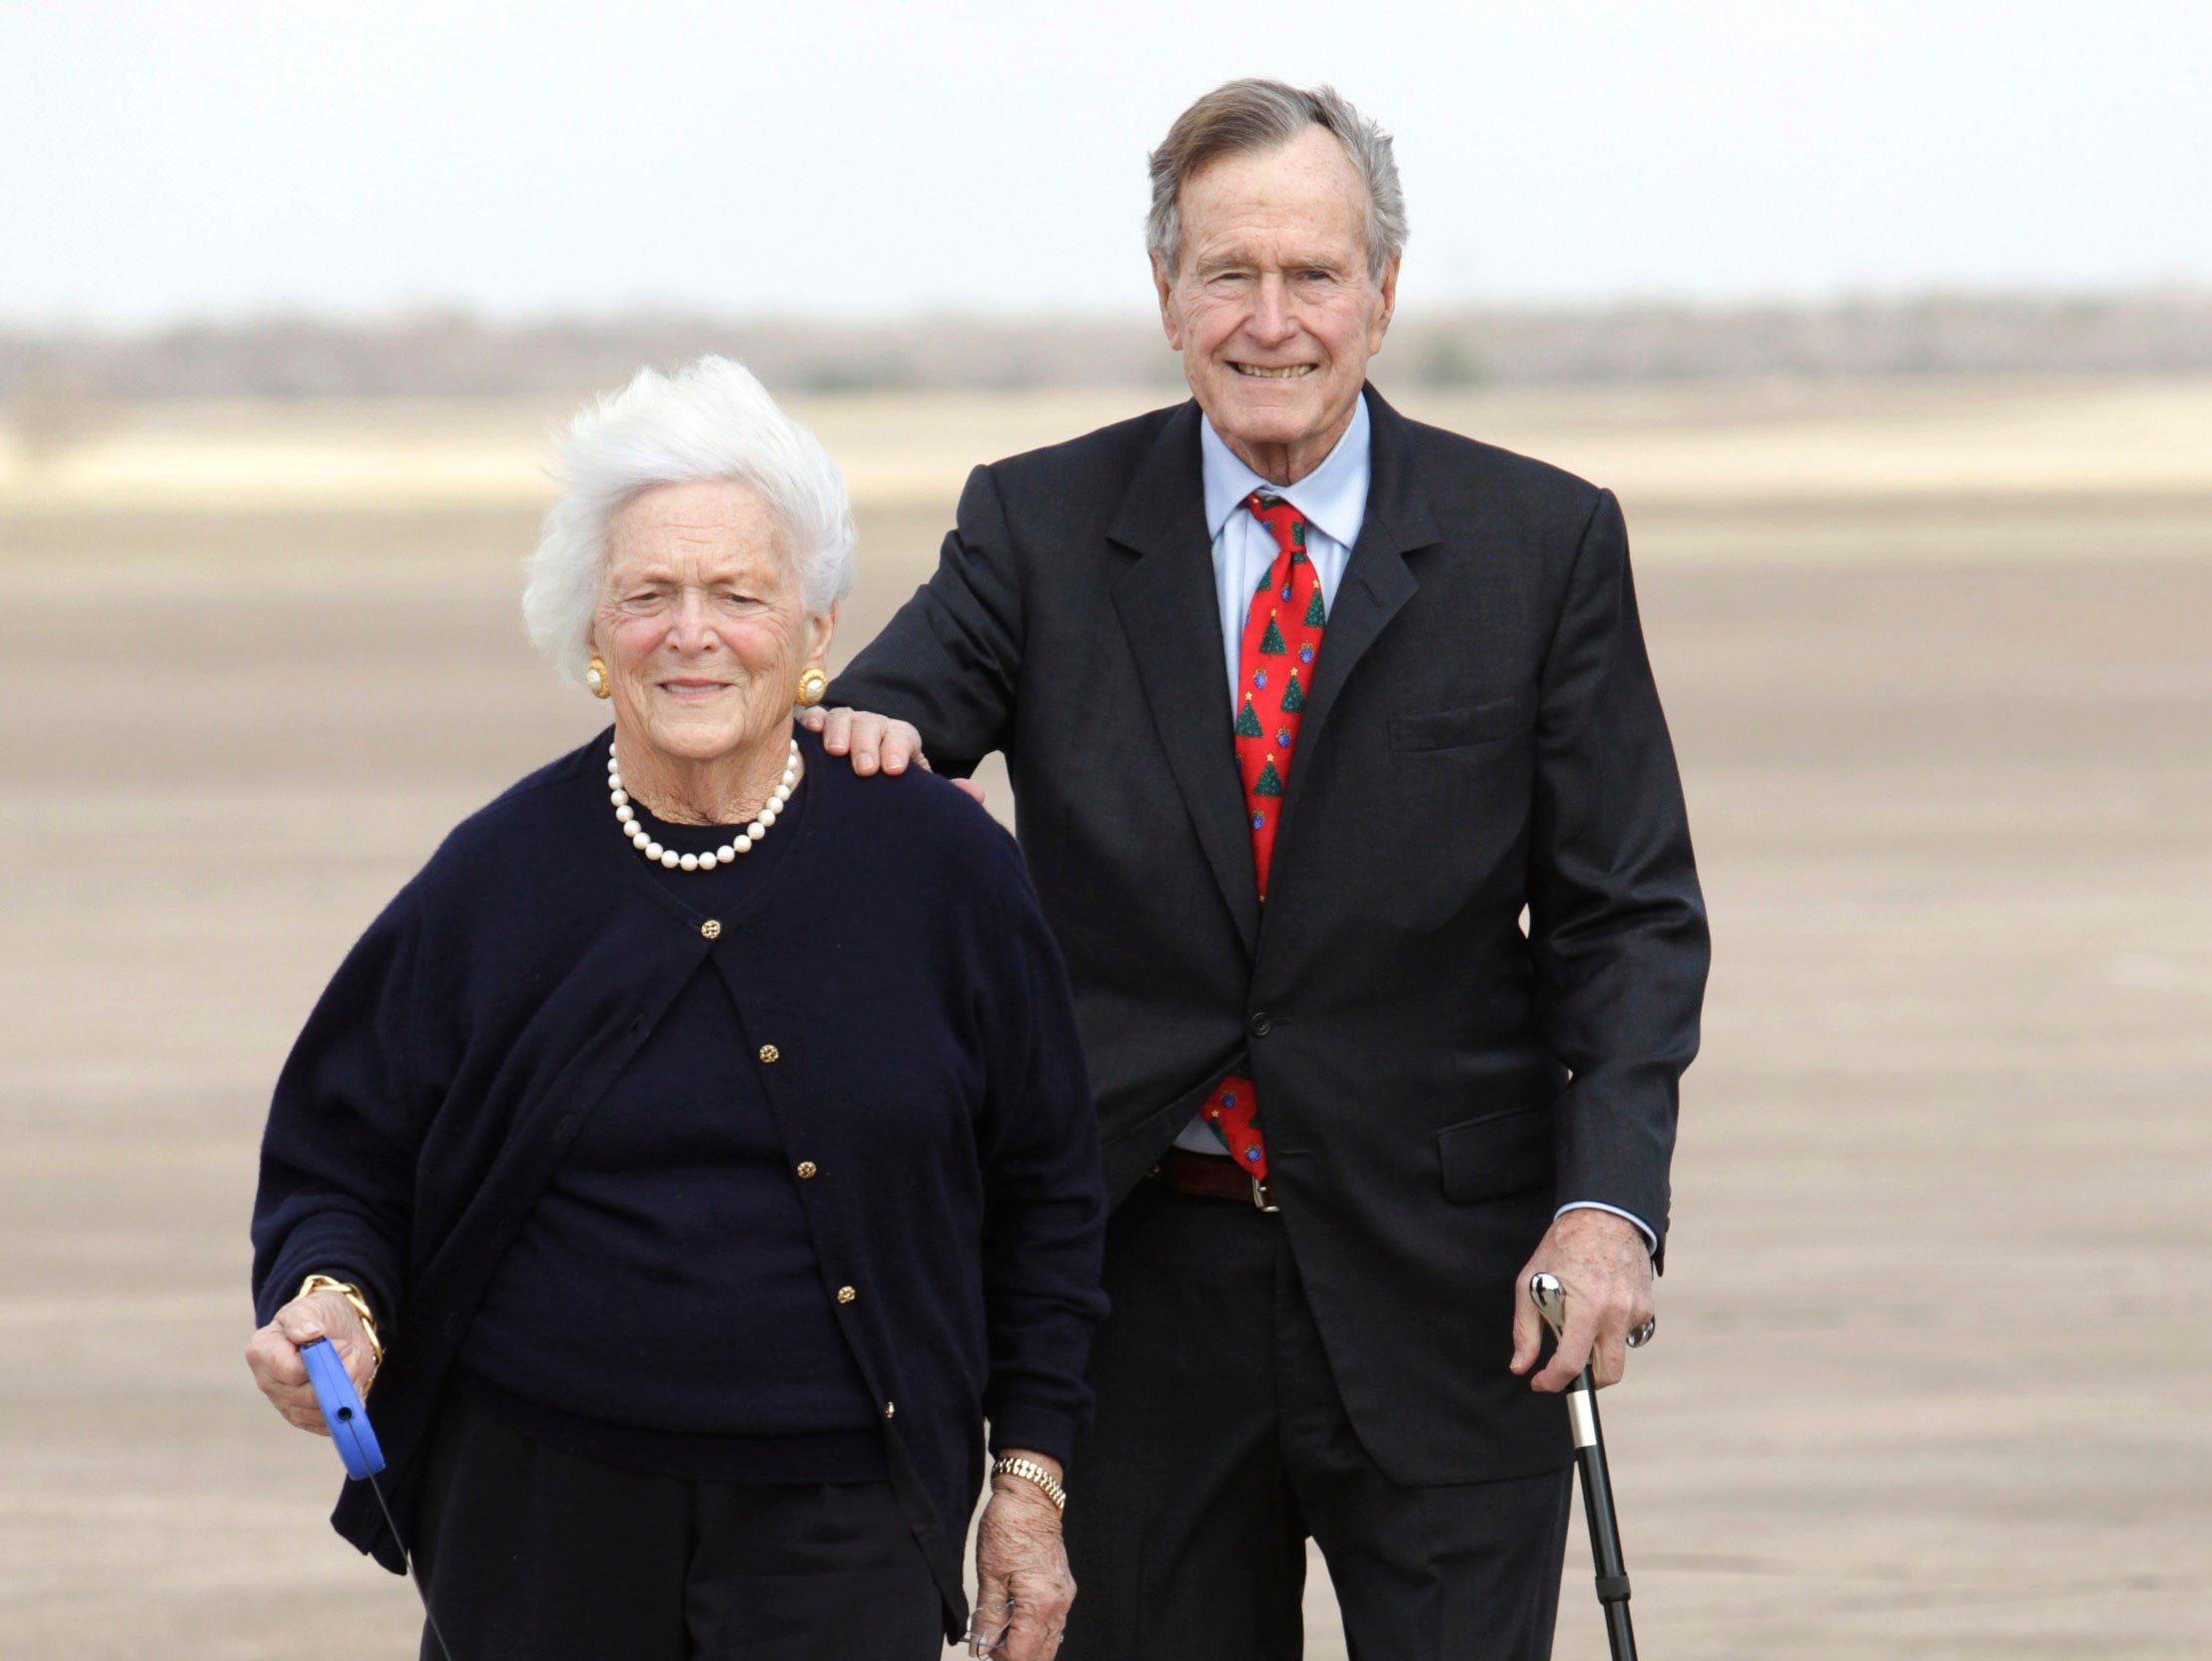 ** FILE ** In this Friday, Dec. 26, 2008 file photo, former President George H.W. Bush, right, and Barbara Bush walk their dog after arriving aboard Air Force One,  in Waco, Texas. A family spokesman said Wednesday, March 4, 2009 that former first lady Barbara Bush had successful open heart surgery. (AP Photo/Evan Vucci)